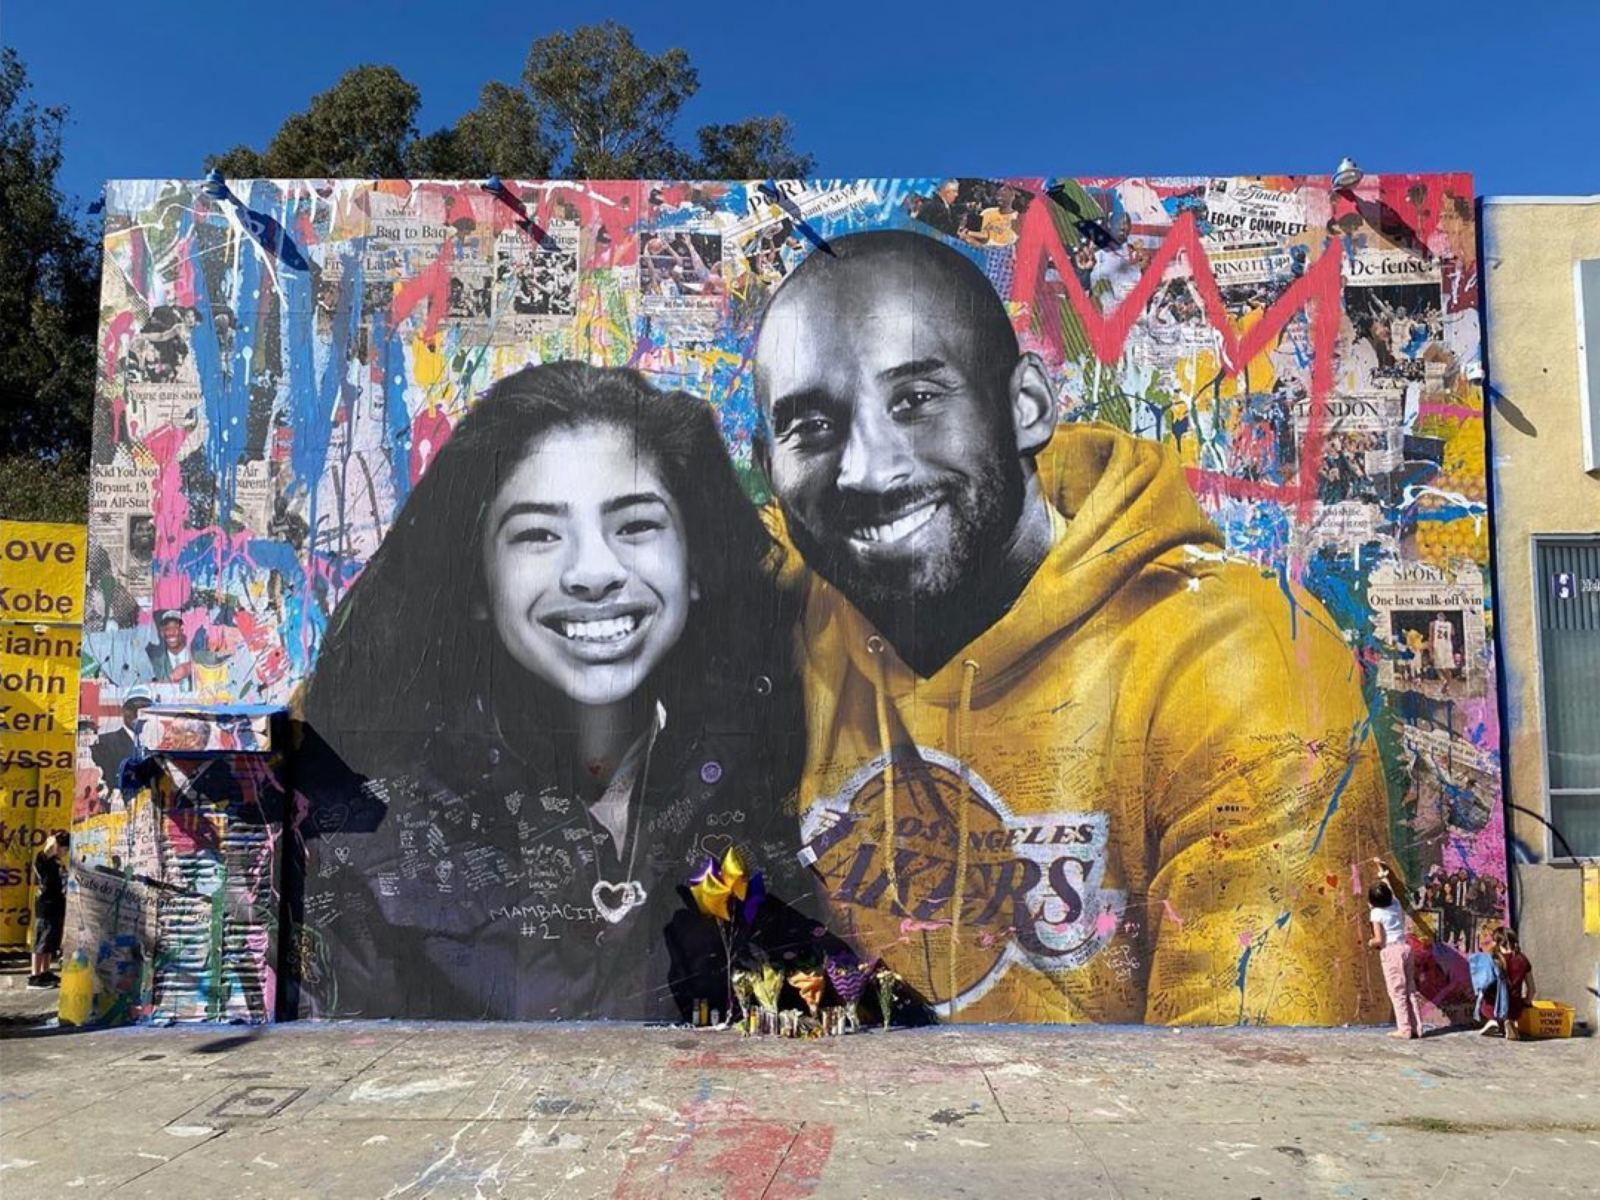 Discover Kobe Bryant Murals in Los Angeles | Discover Los